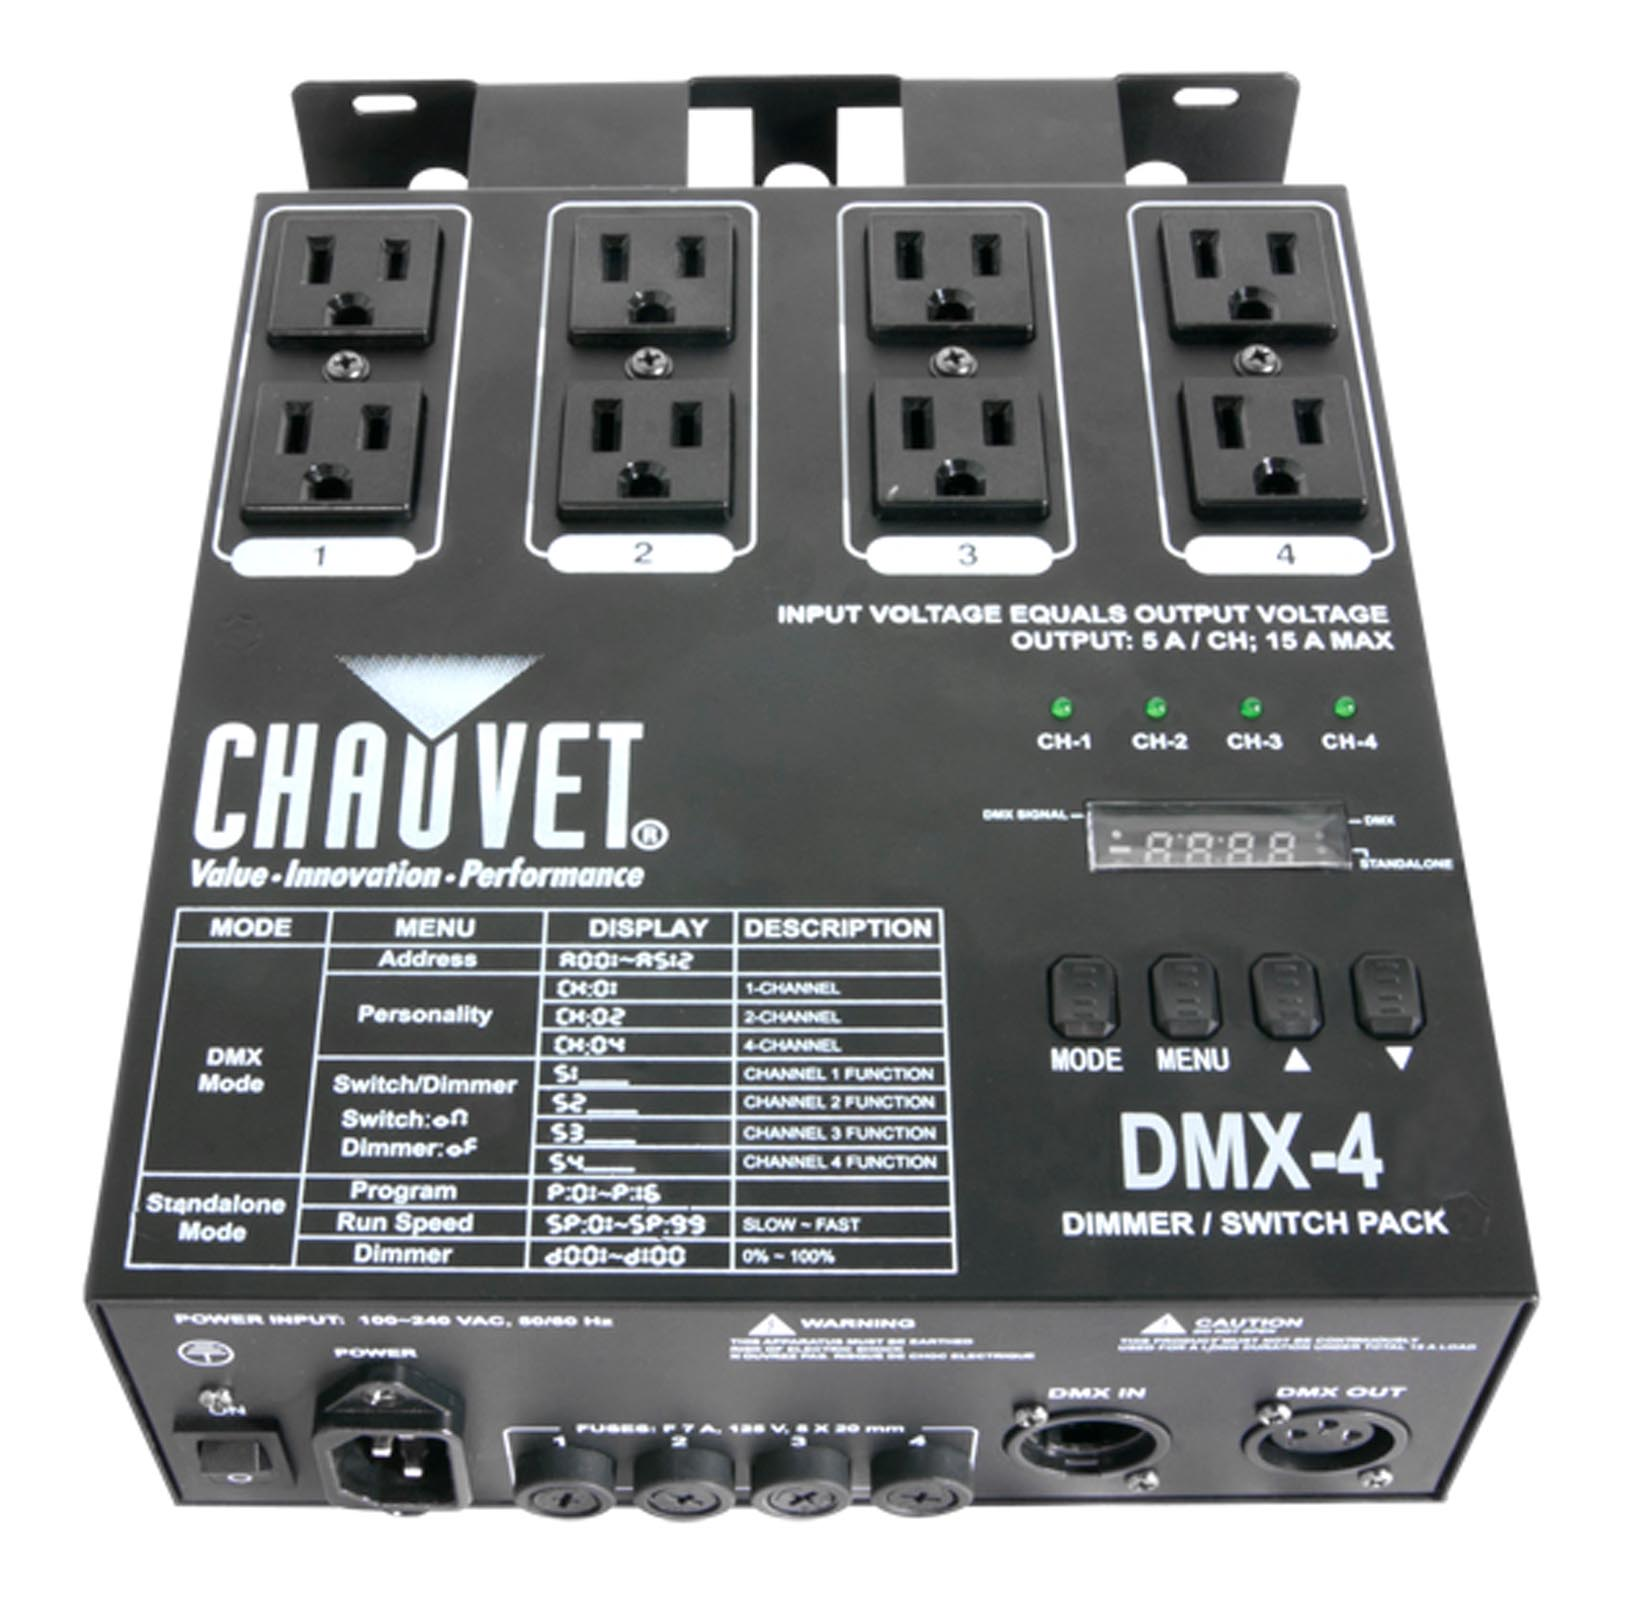 Chauvet DMX-4 4 Channel DMX-512 DJ Dimmer/Switch Relay Pack Light Controller